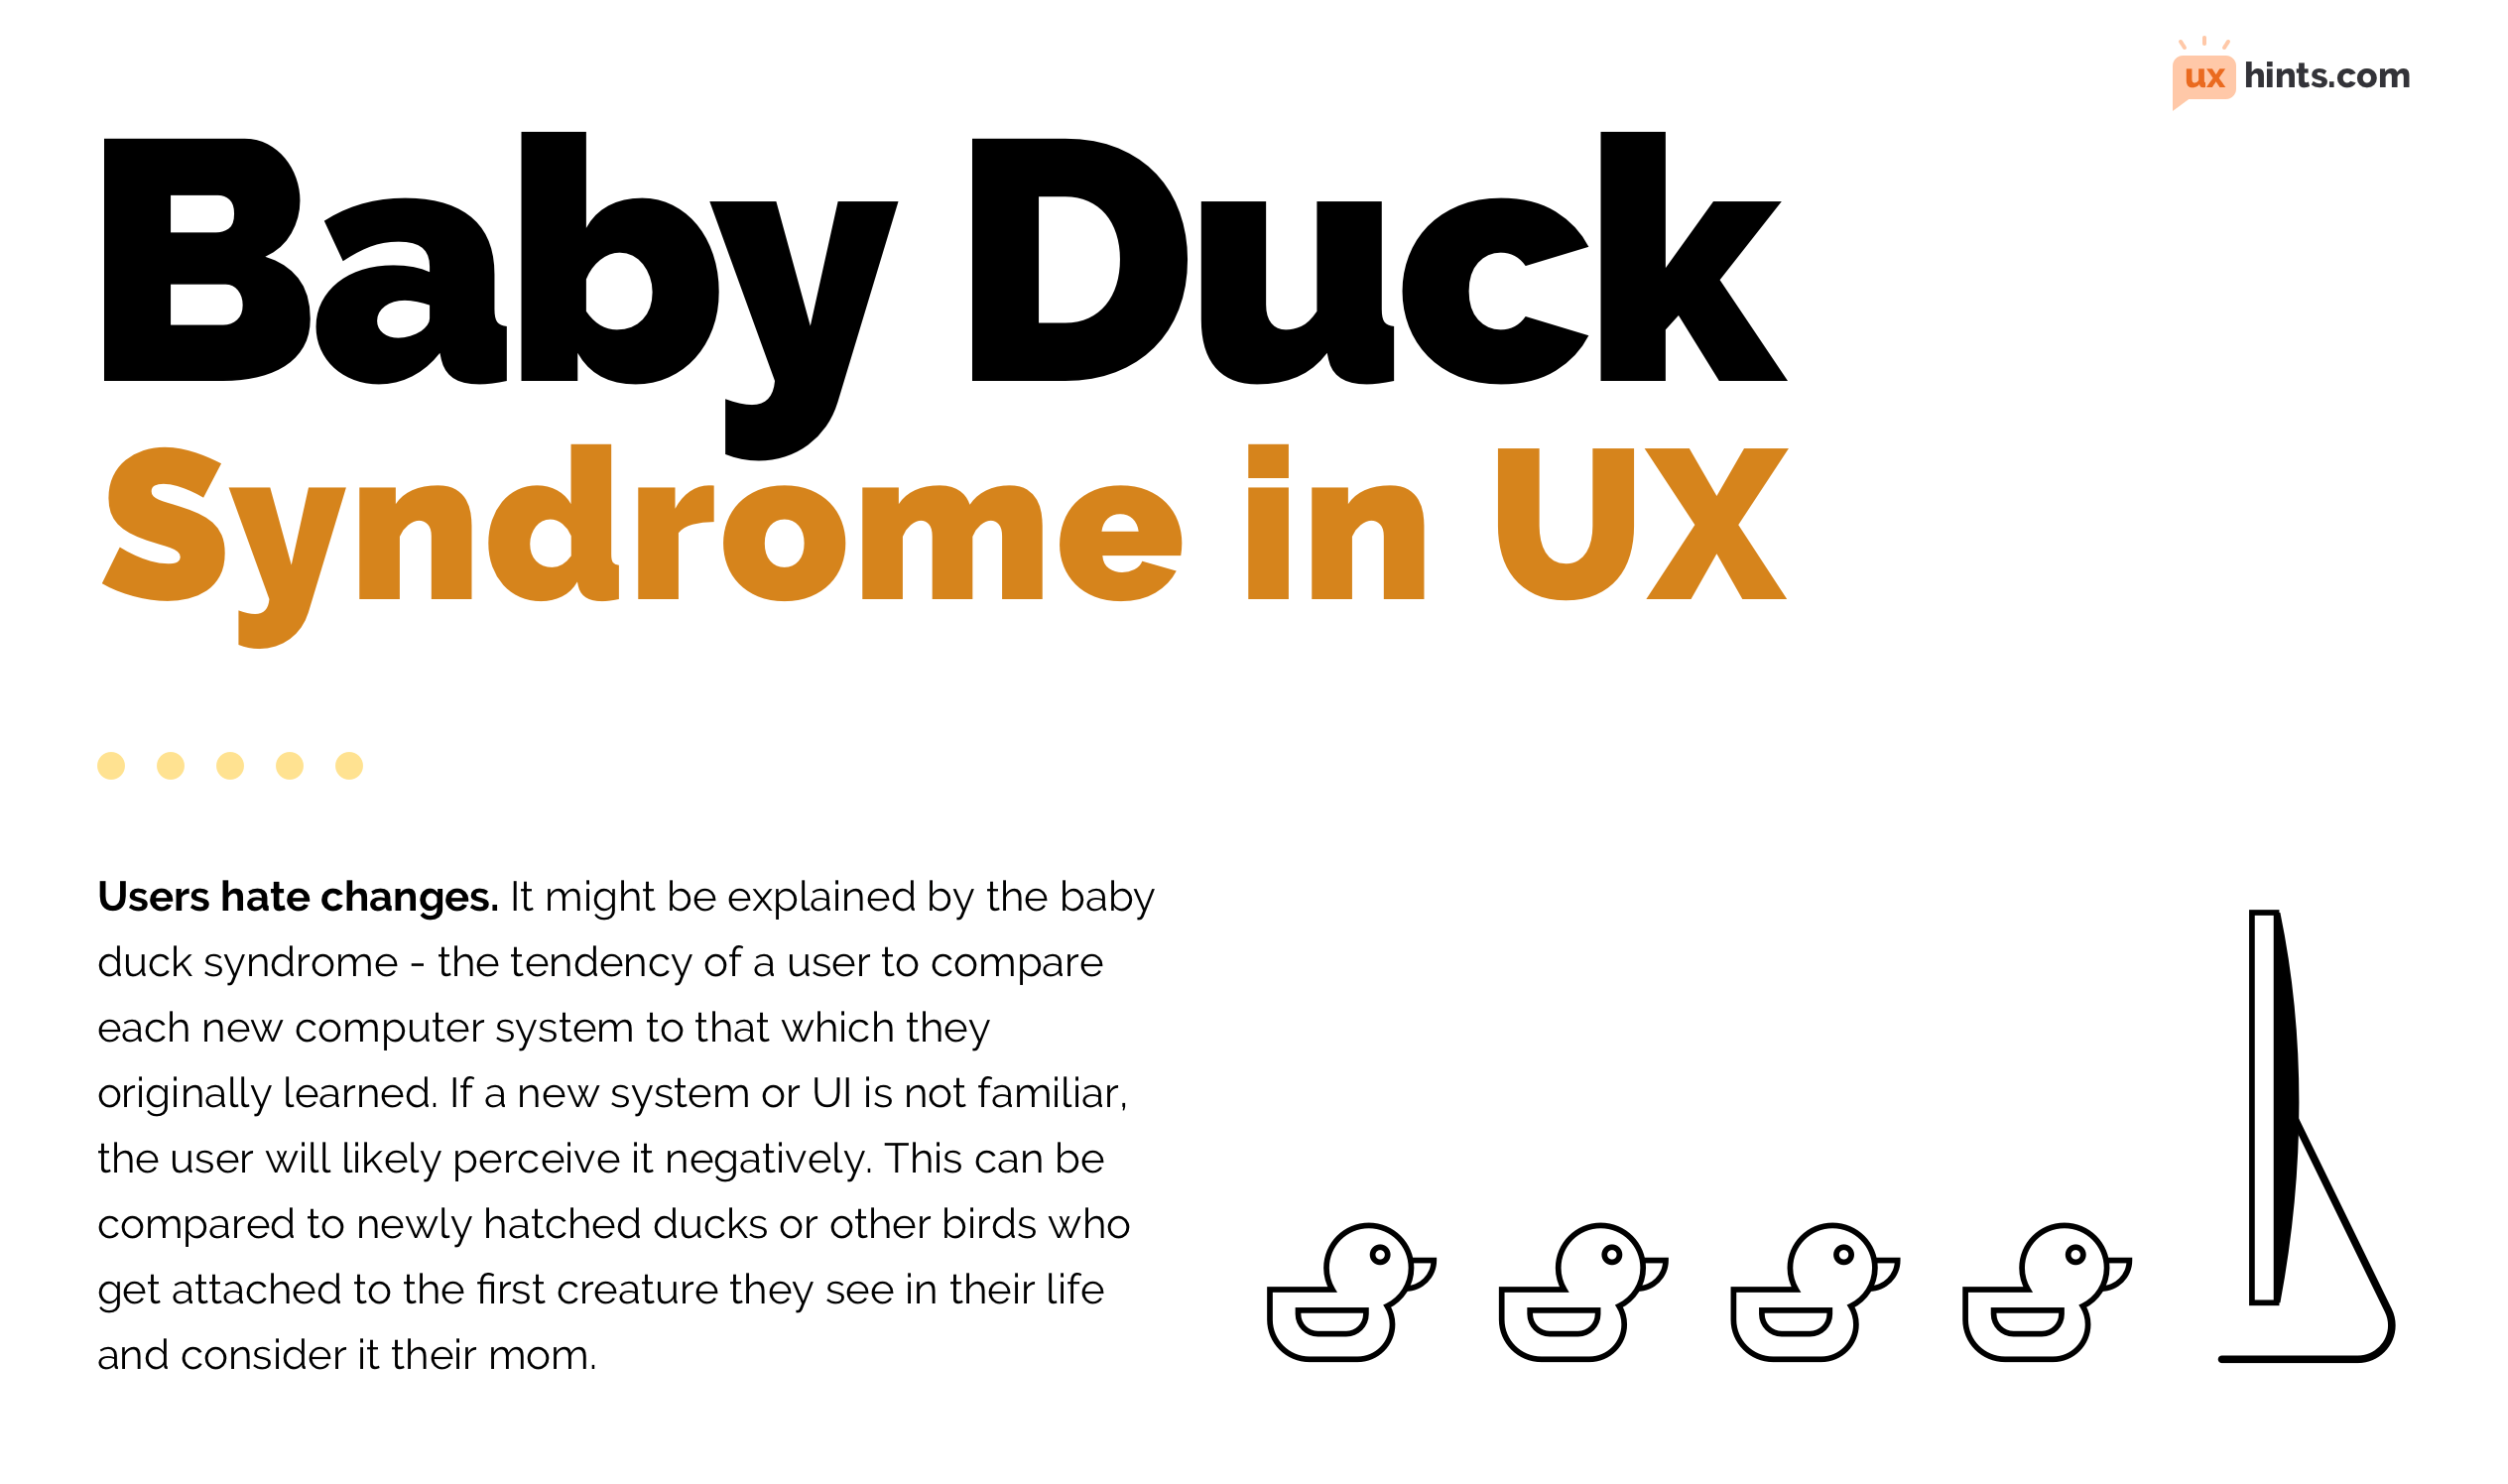 Baby Duck Syndrome